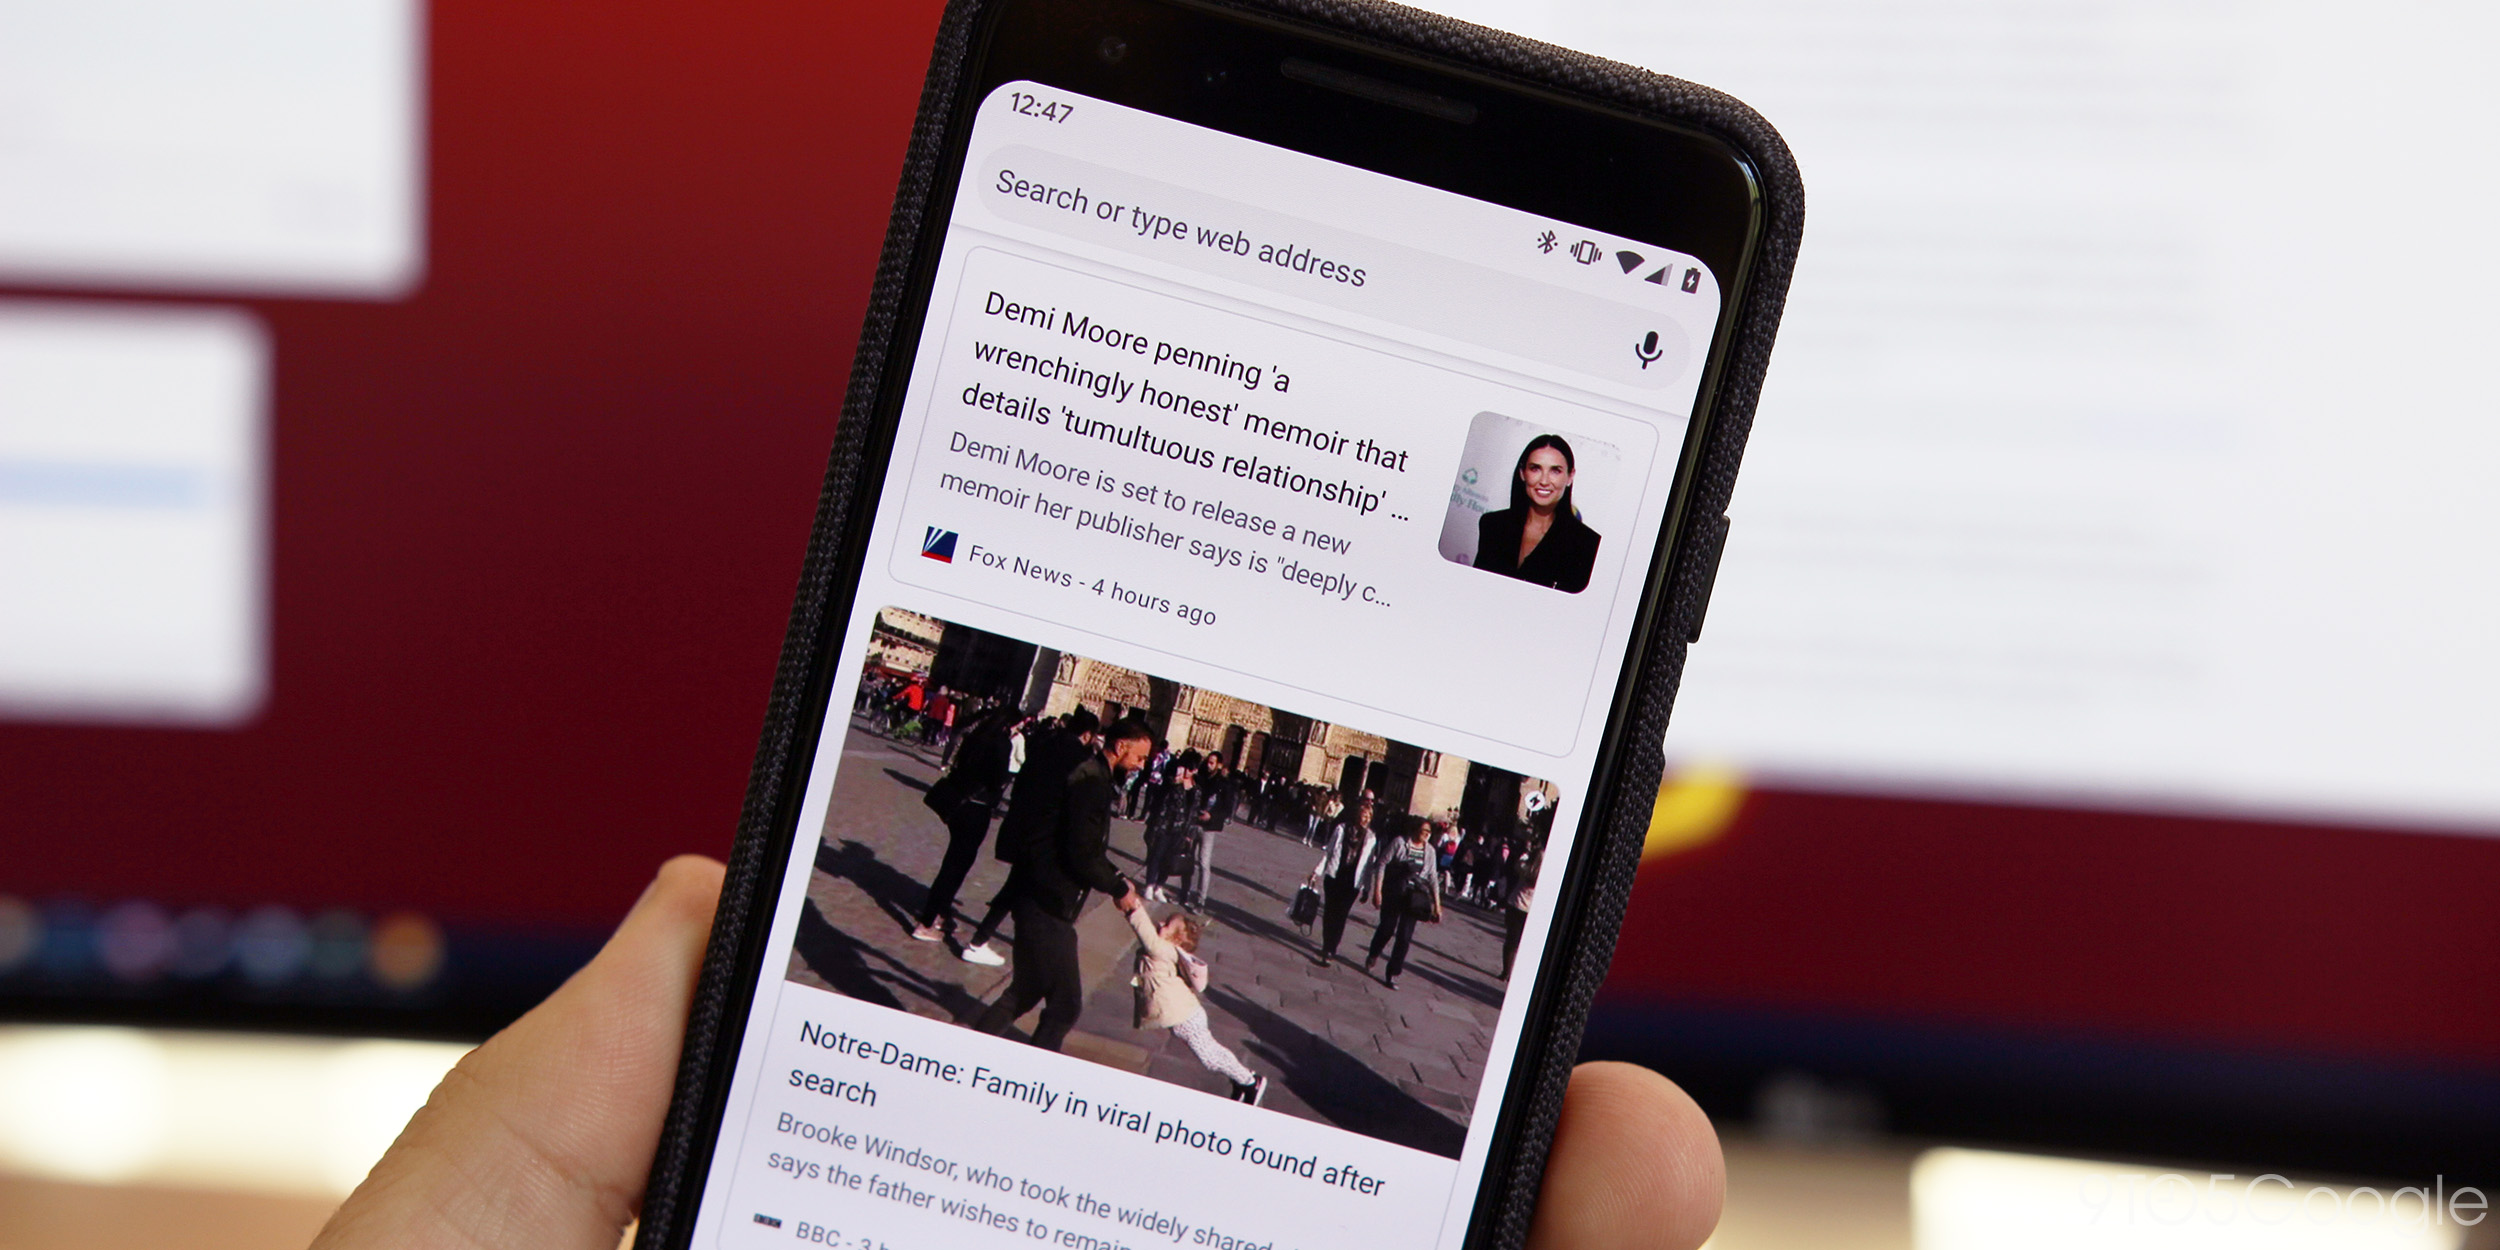 Chrome for Android testing snippets in New Tab Page 'Articles for you' [Gallery]